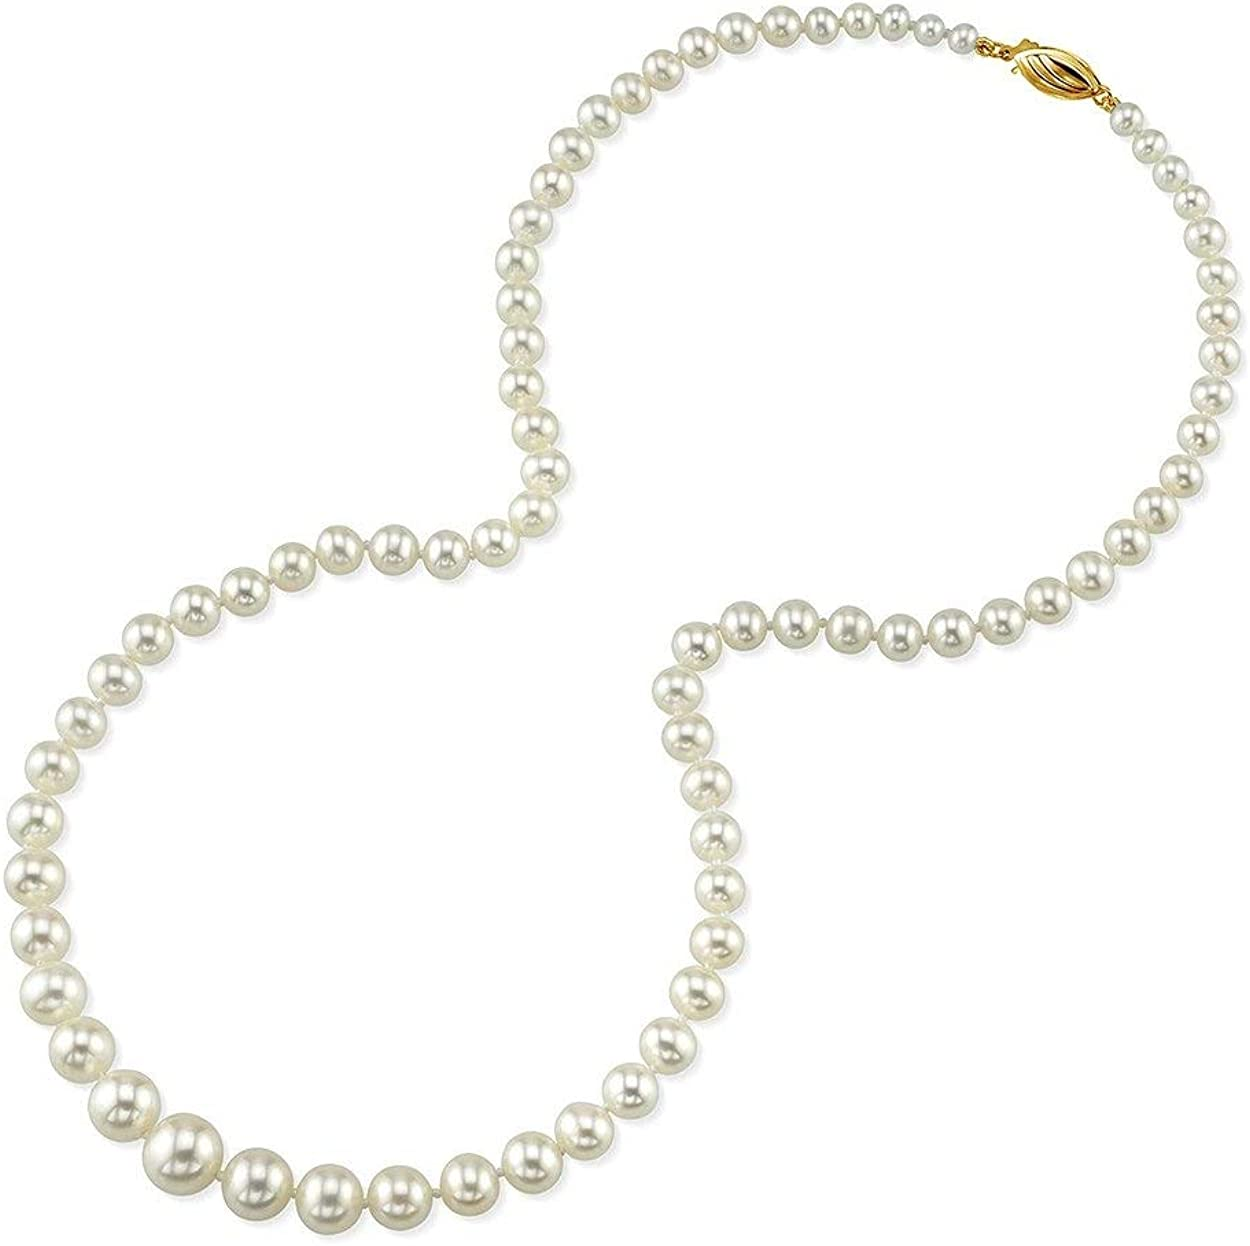 Jewelry Craft Supplies White Pearl Pendant FC434-PG-WH Polished Gold Plated  2 Pcs